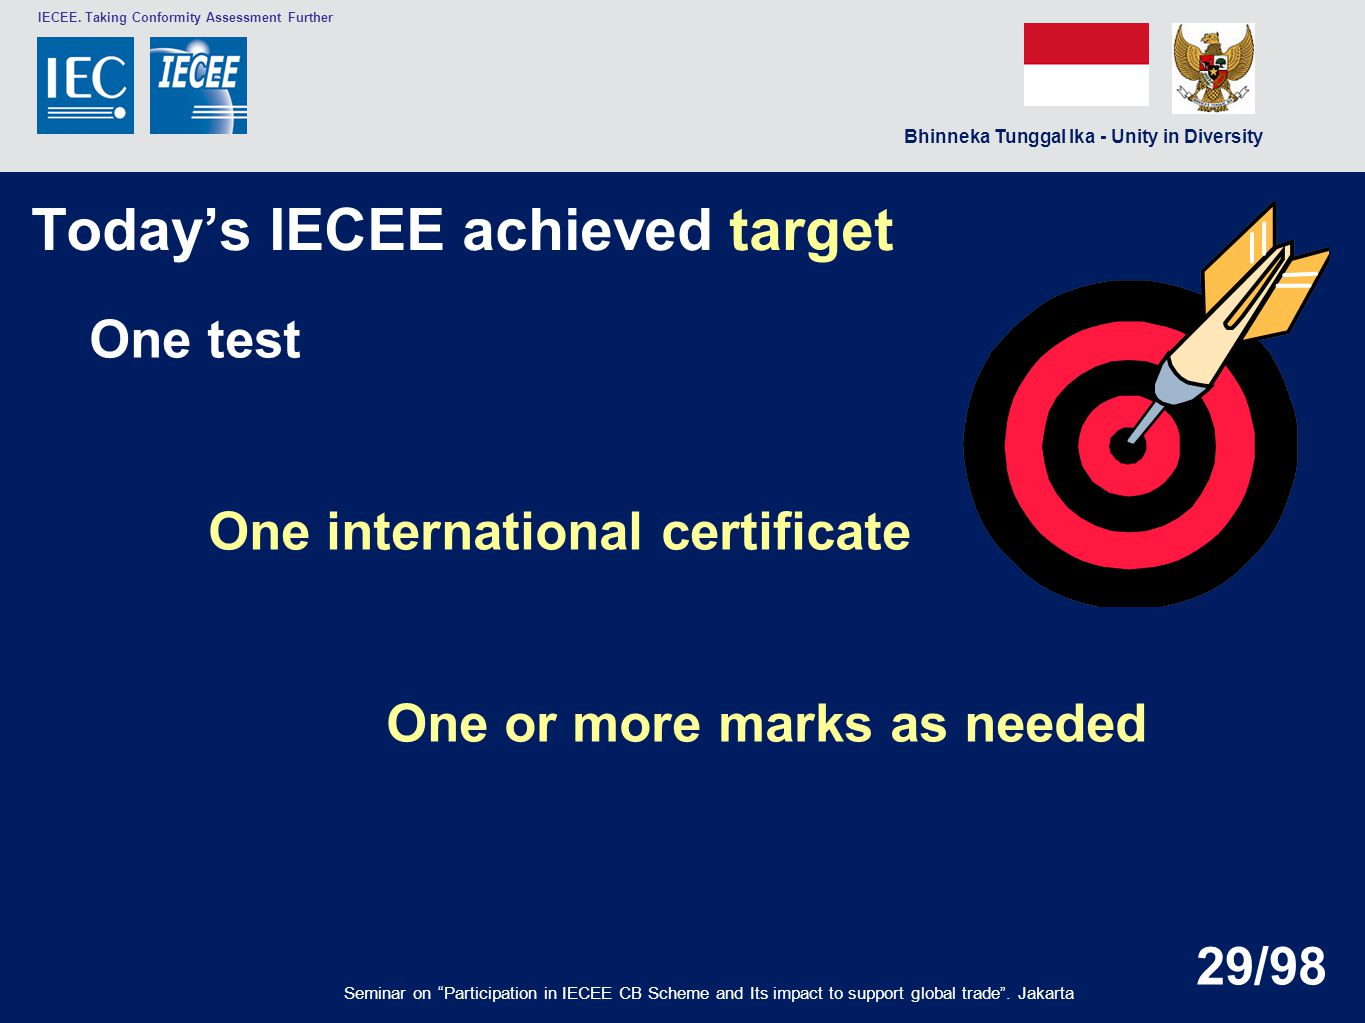 Today's IECEE achieved target